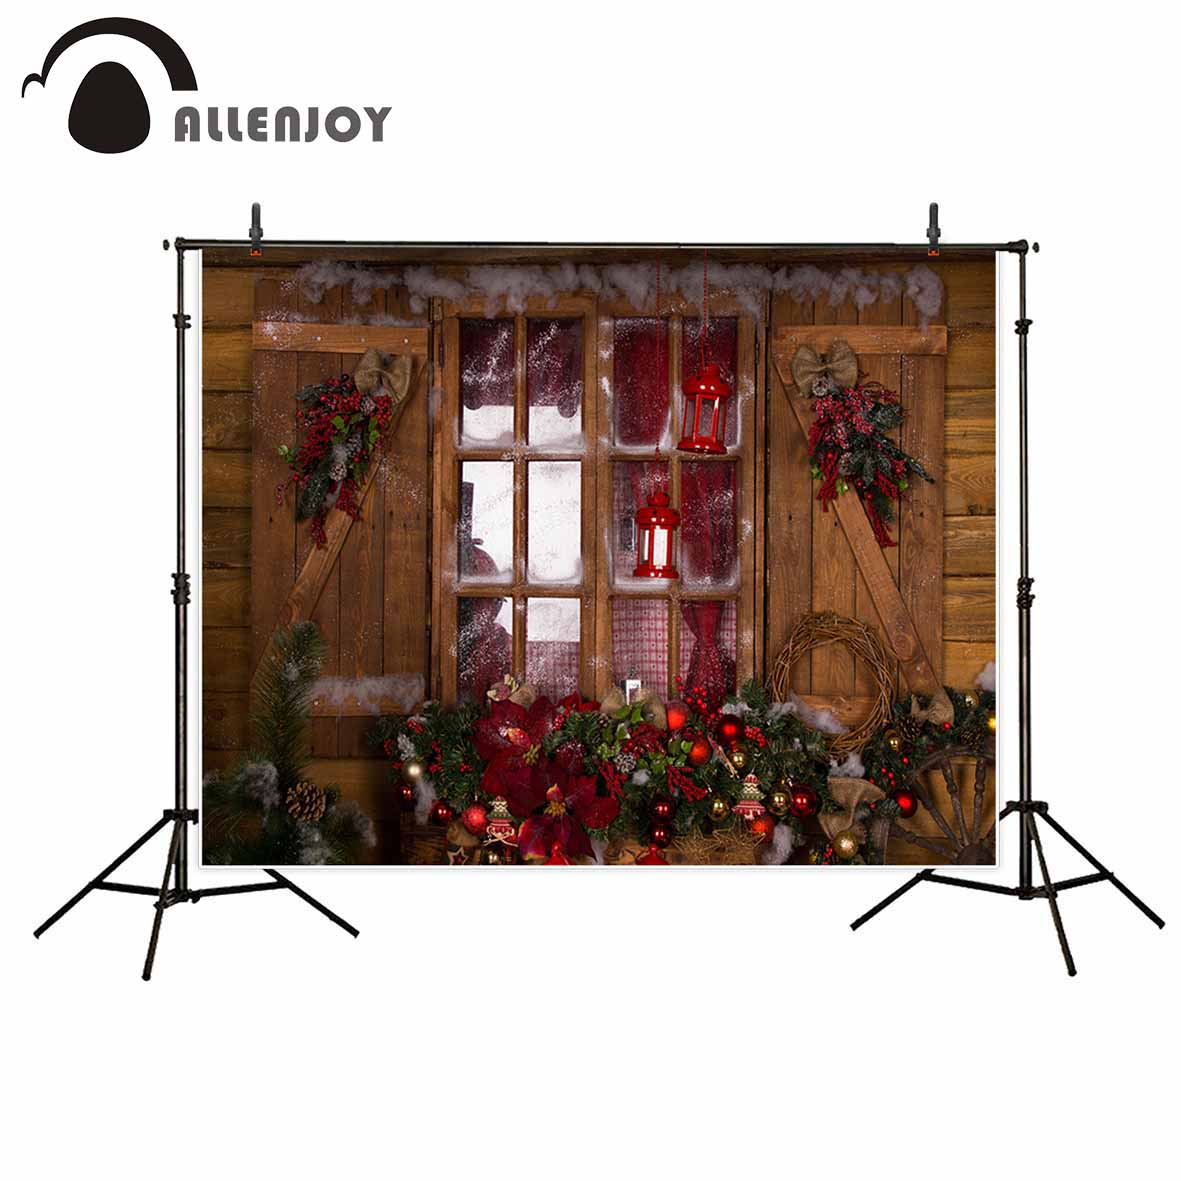 Allenjoy photography backdrop Wood windows Christmas decorations Pine nuts background photo studio new design camera fotografica christmas backdrop photography allenjoy snowflake stars blur background photographic studio children s camera digital printing